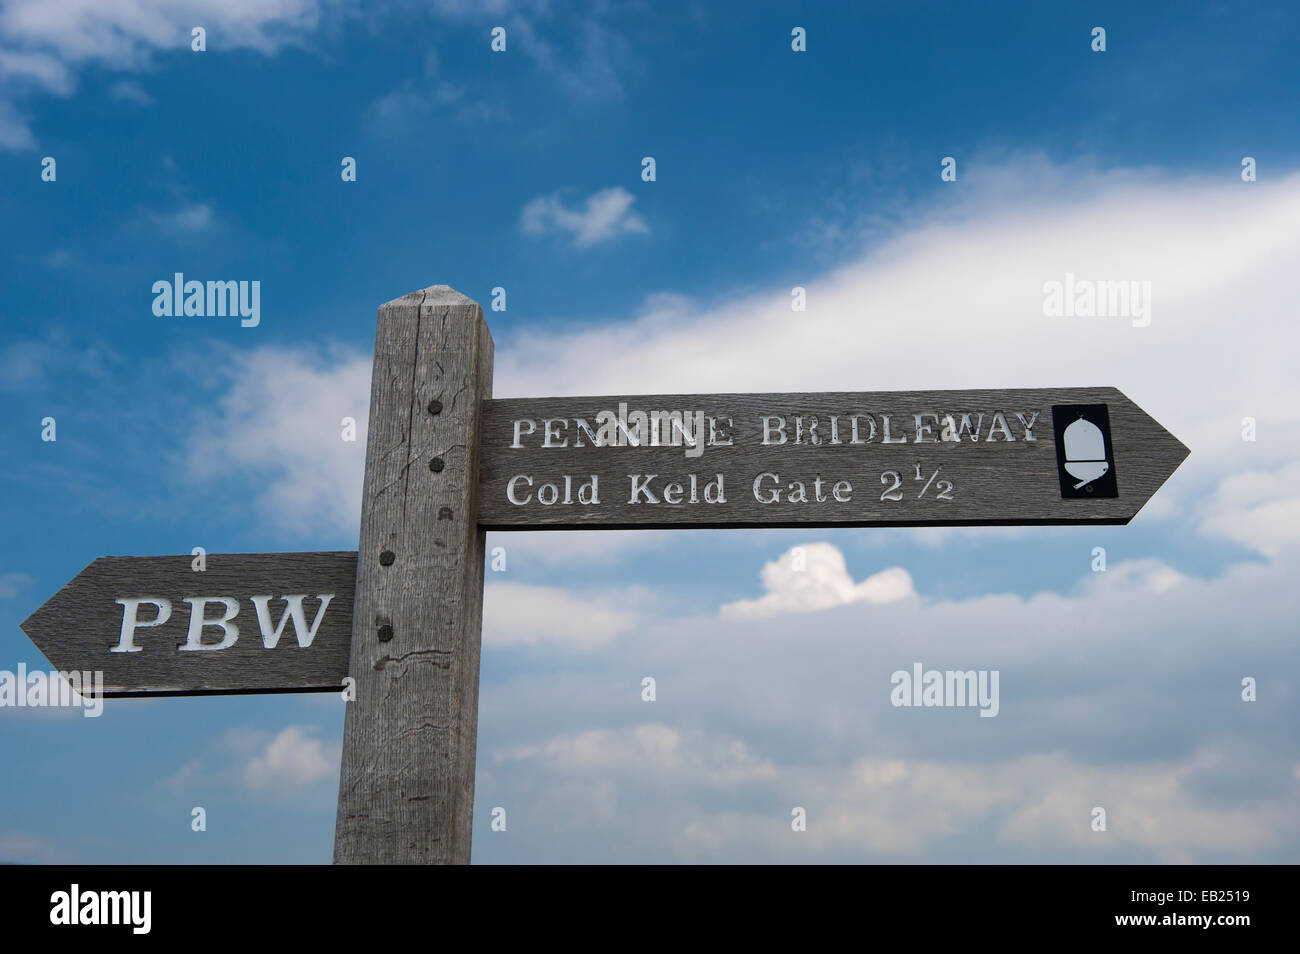 Signpost for the Pennine Bridleway, a 205 mile (330km) horse trail down the Pennines in the UK. - Stock Image